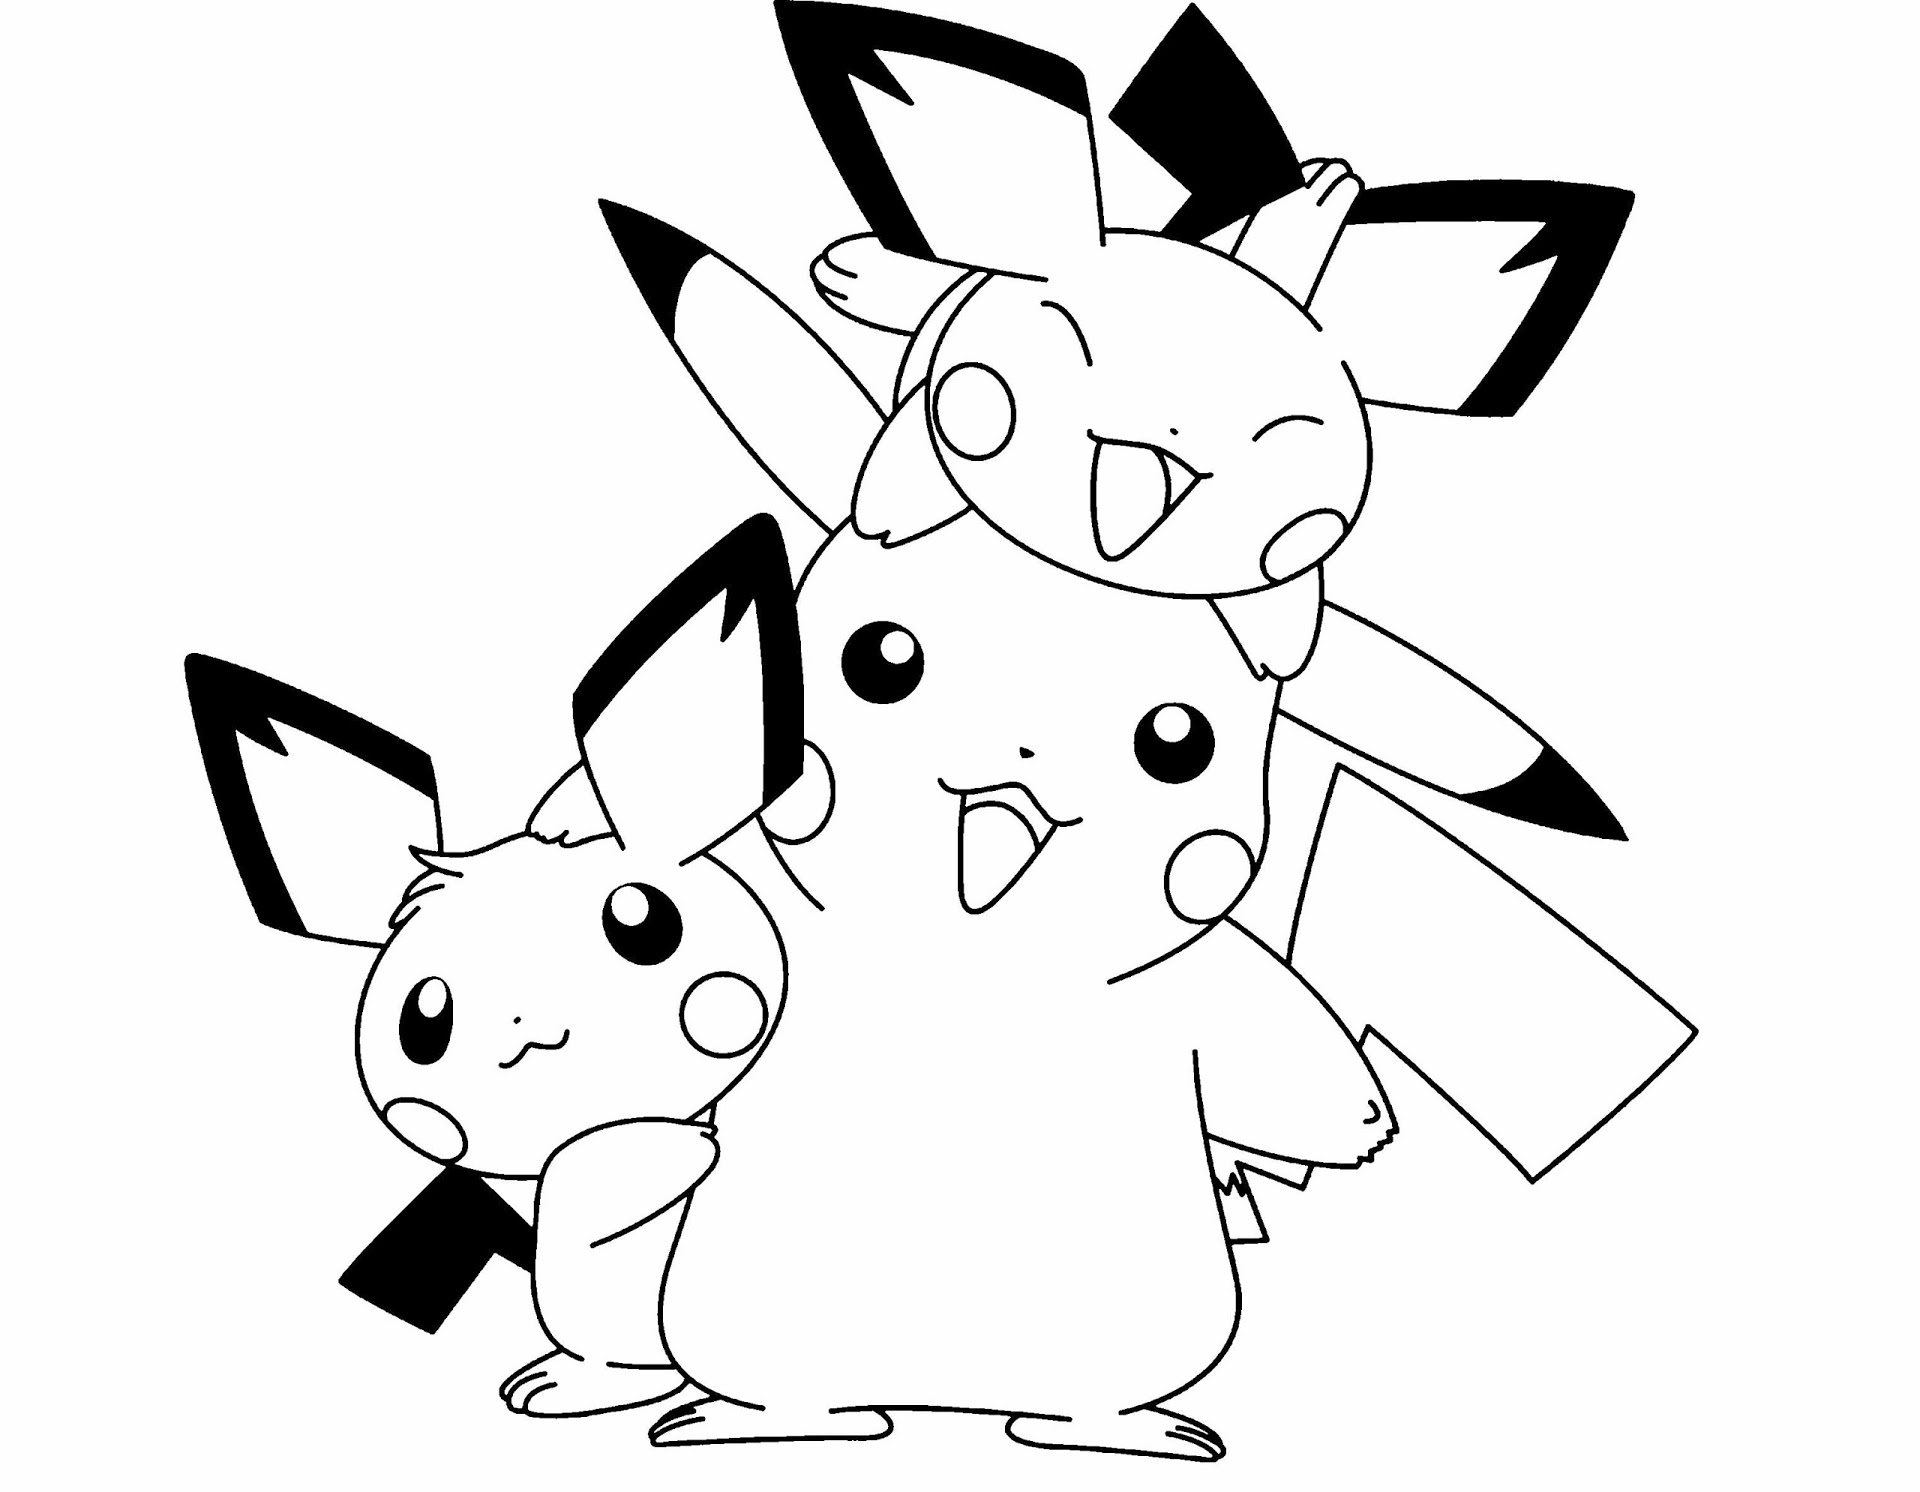 1920x1492 Best Hd Cute Pikachu Coloring Pages Free Printable